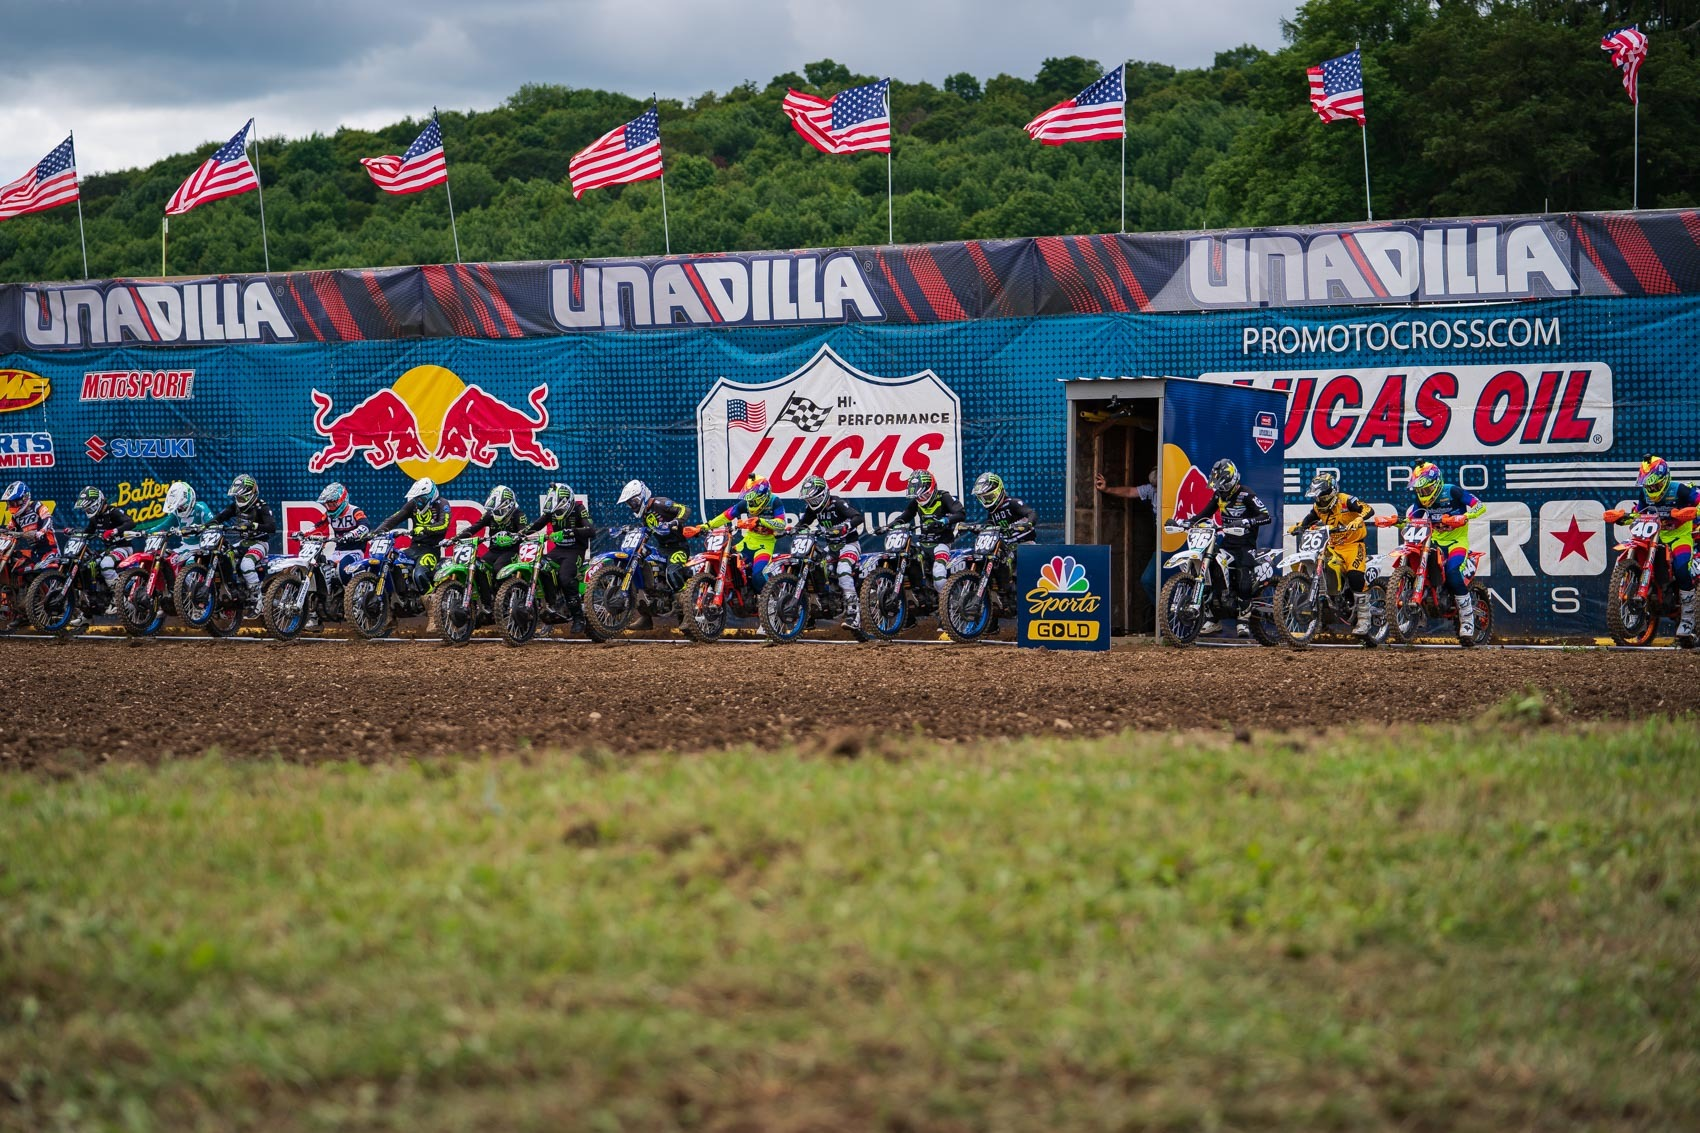 2019-Unadilla-Motocross_250-Race-Report_799